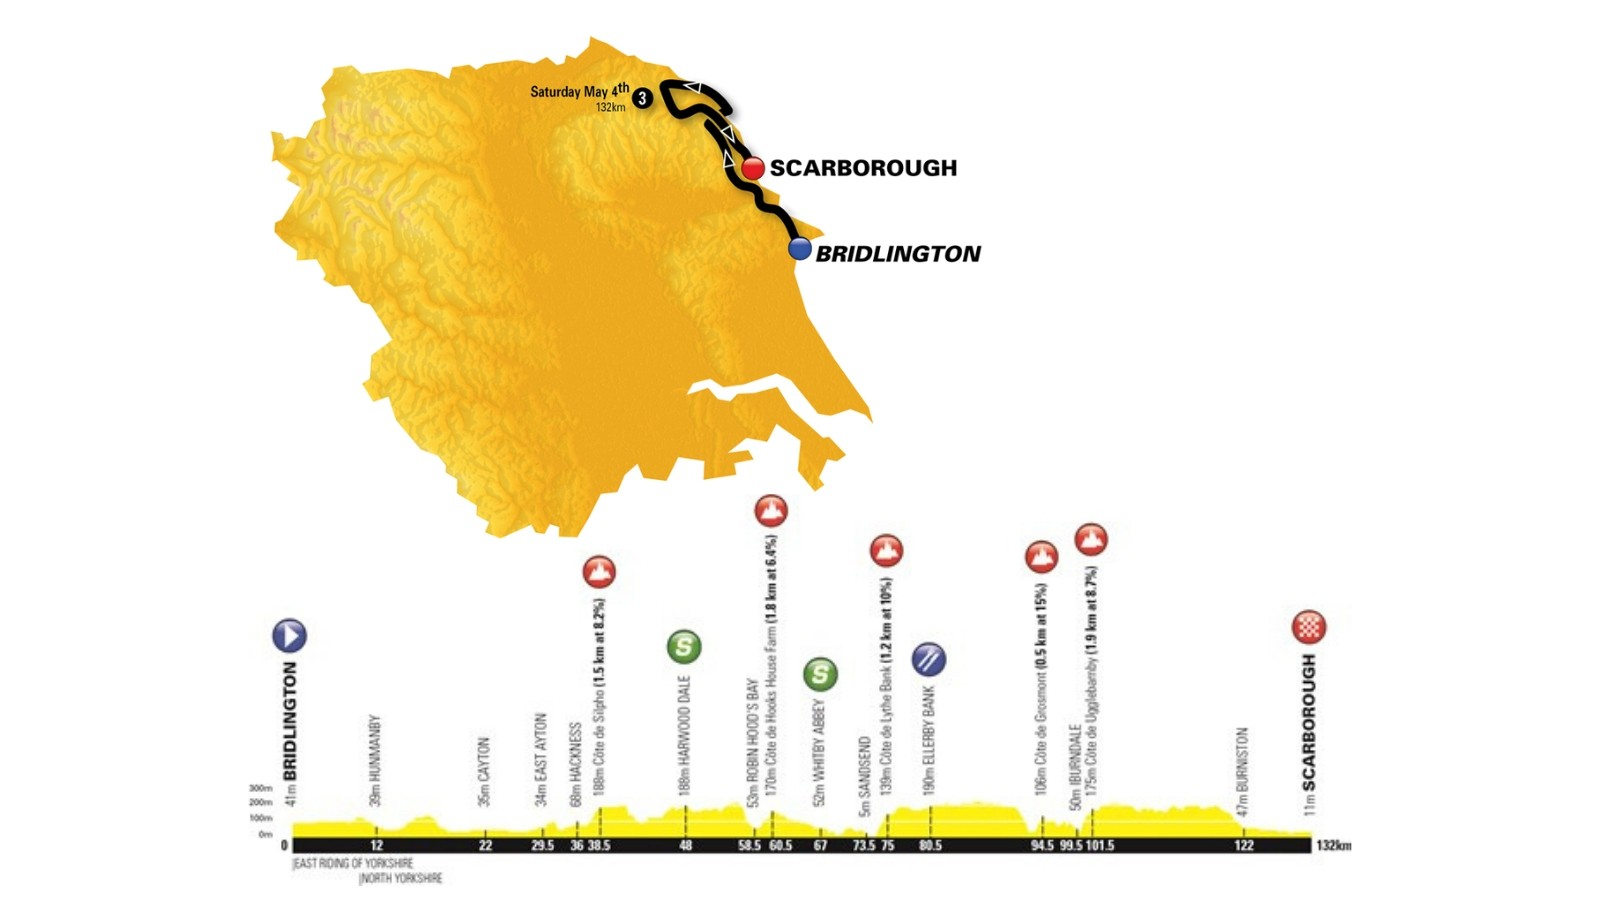 Stage 3 starts in the historic coastal town of Bridlington, finishing in Scarborough for the fifth year running